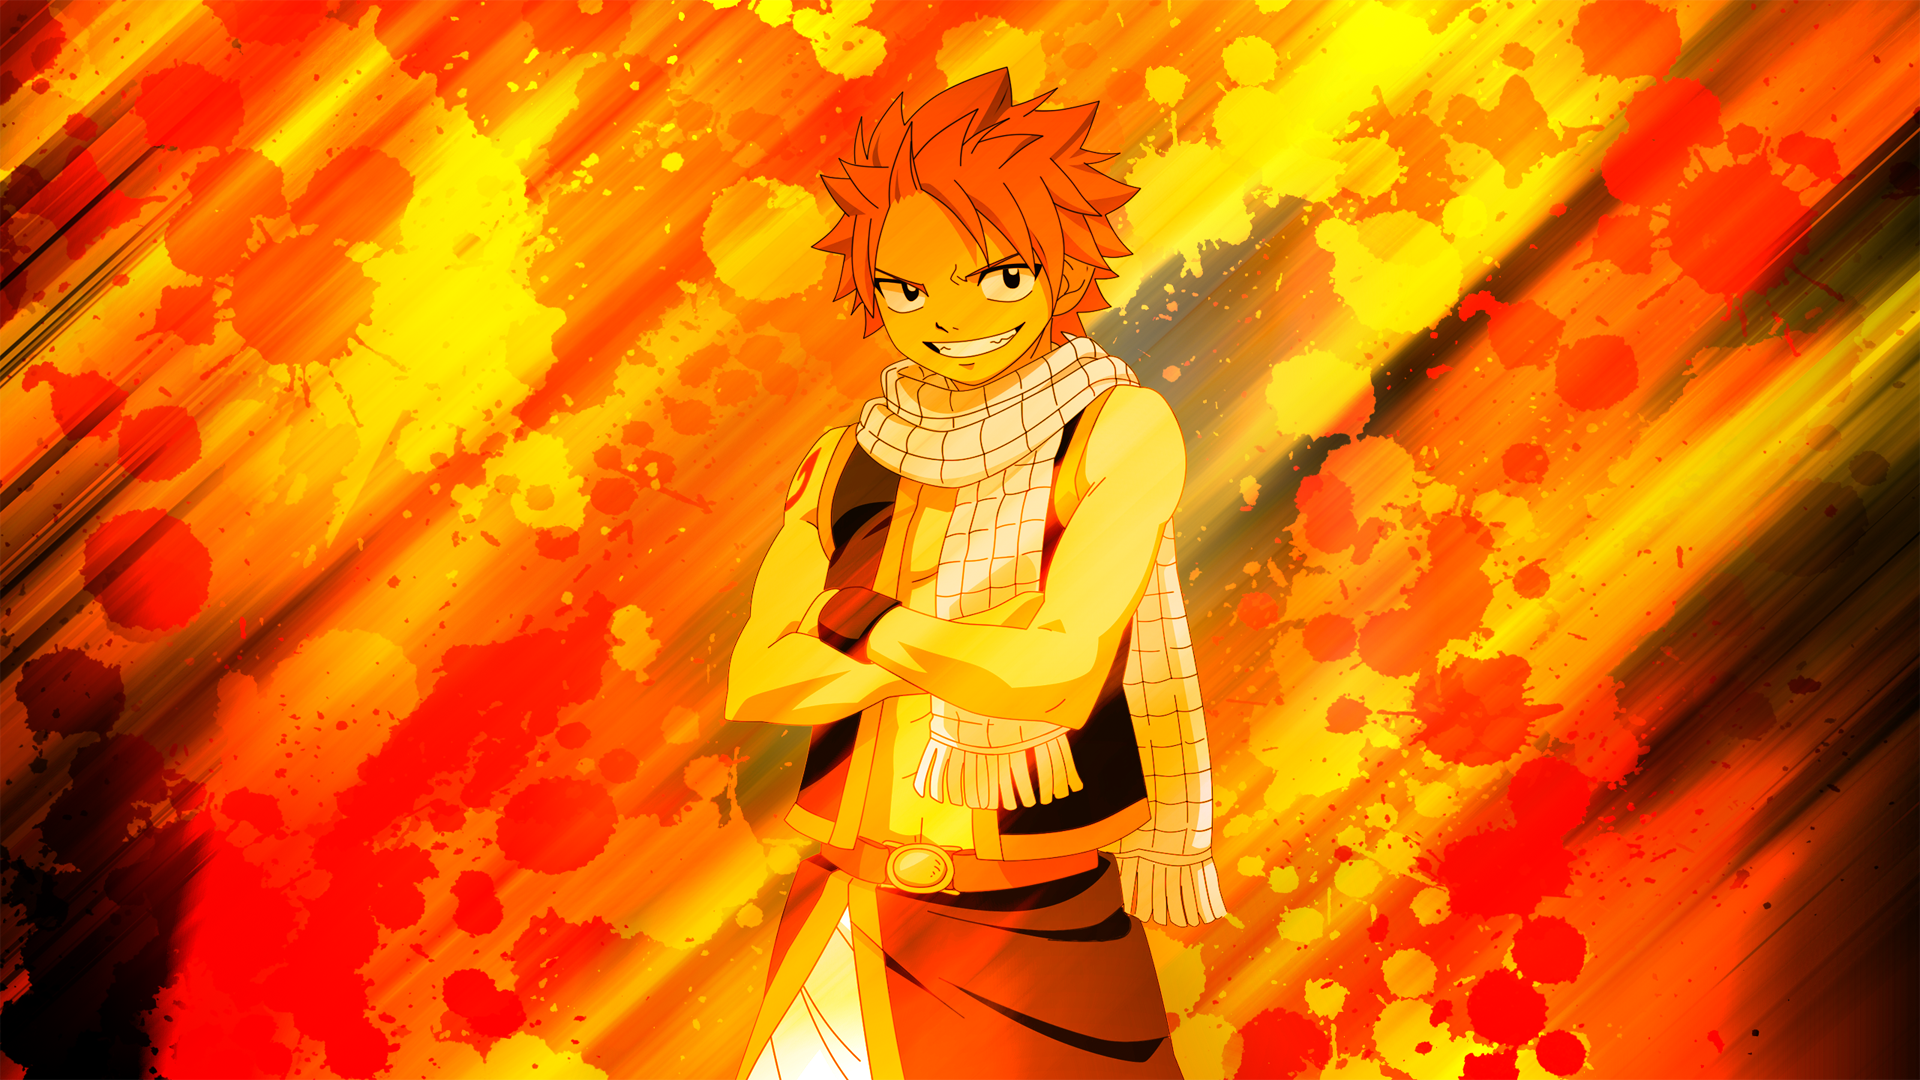 Fairy Tail Natsu DragonSlayer Wallpaper 1080p By EnemyD On 1920x1080